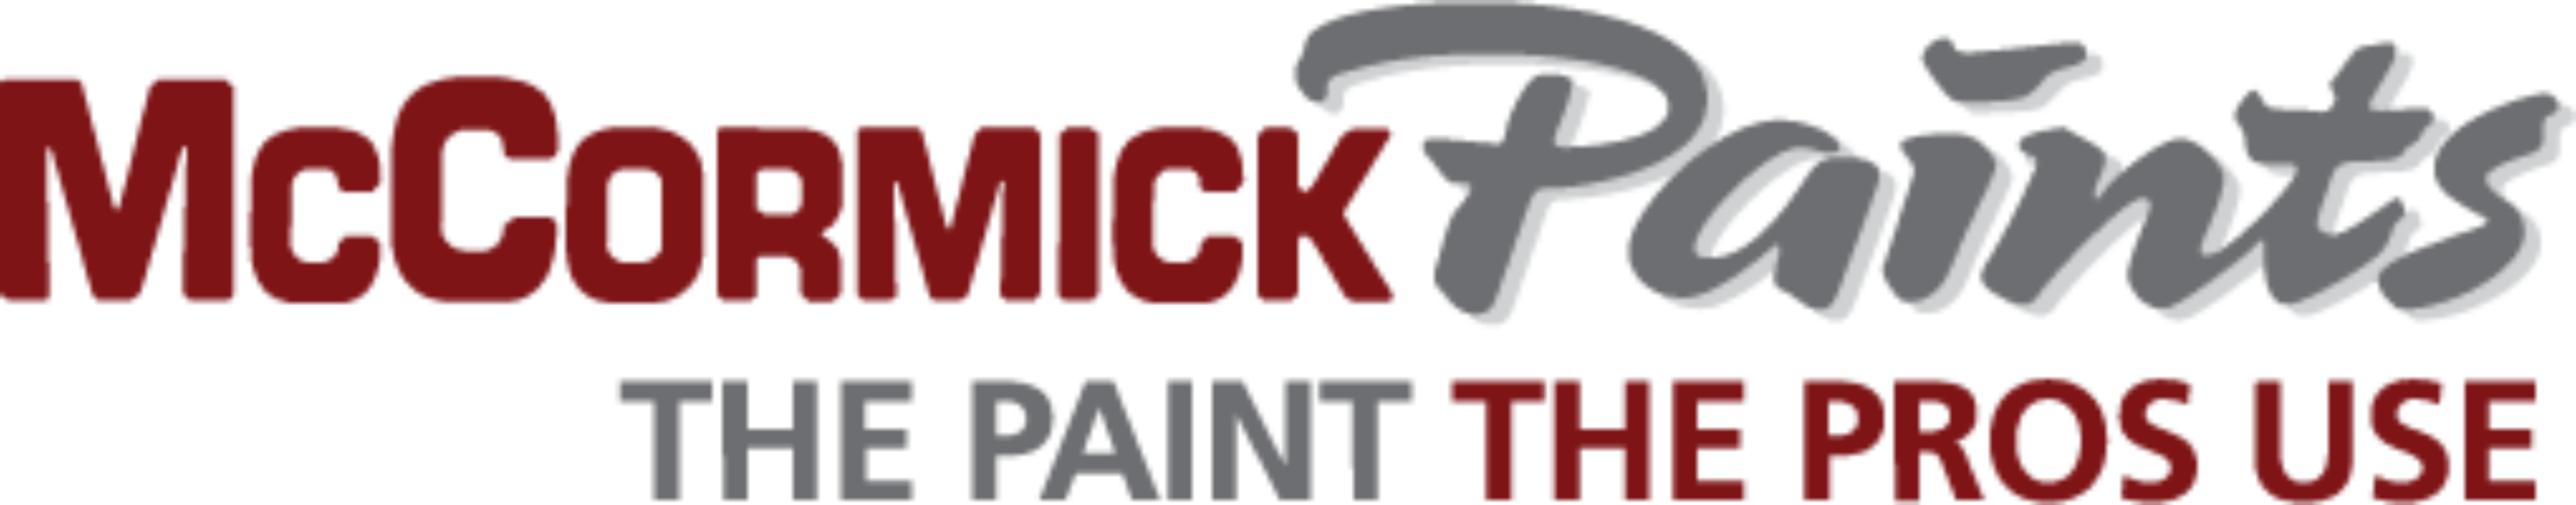 Mccormickpaints